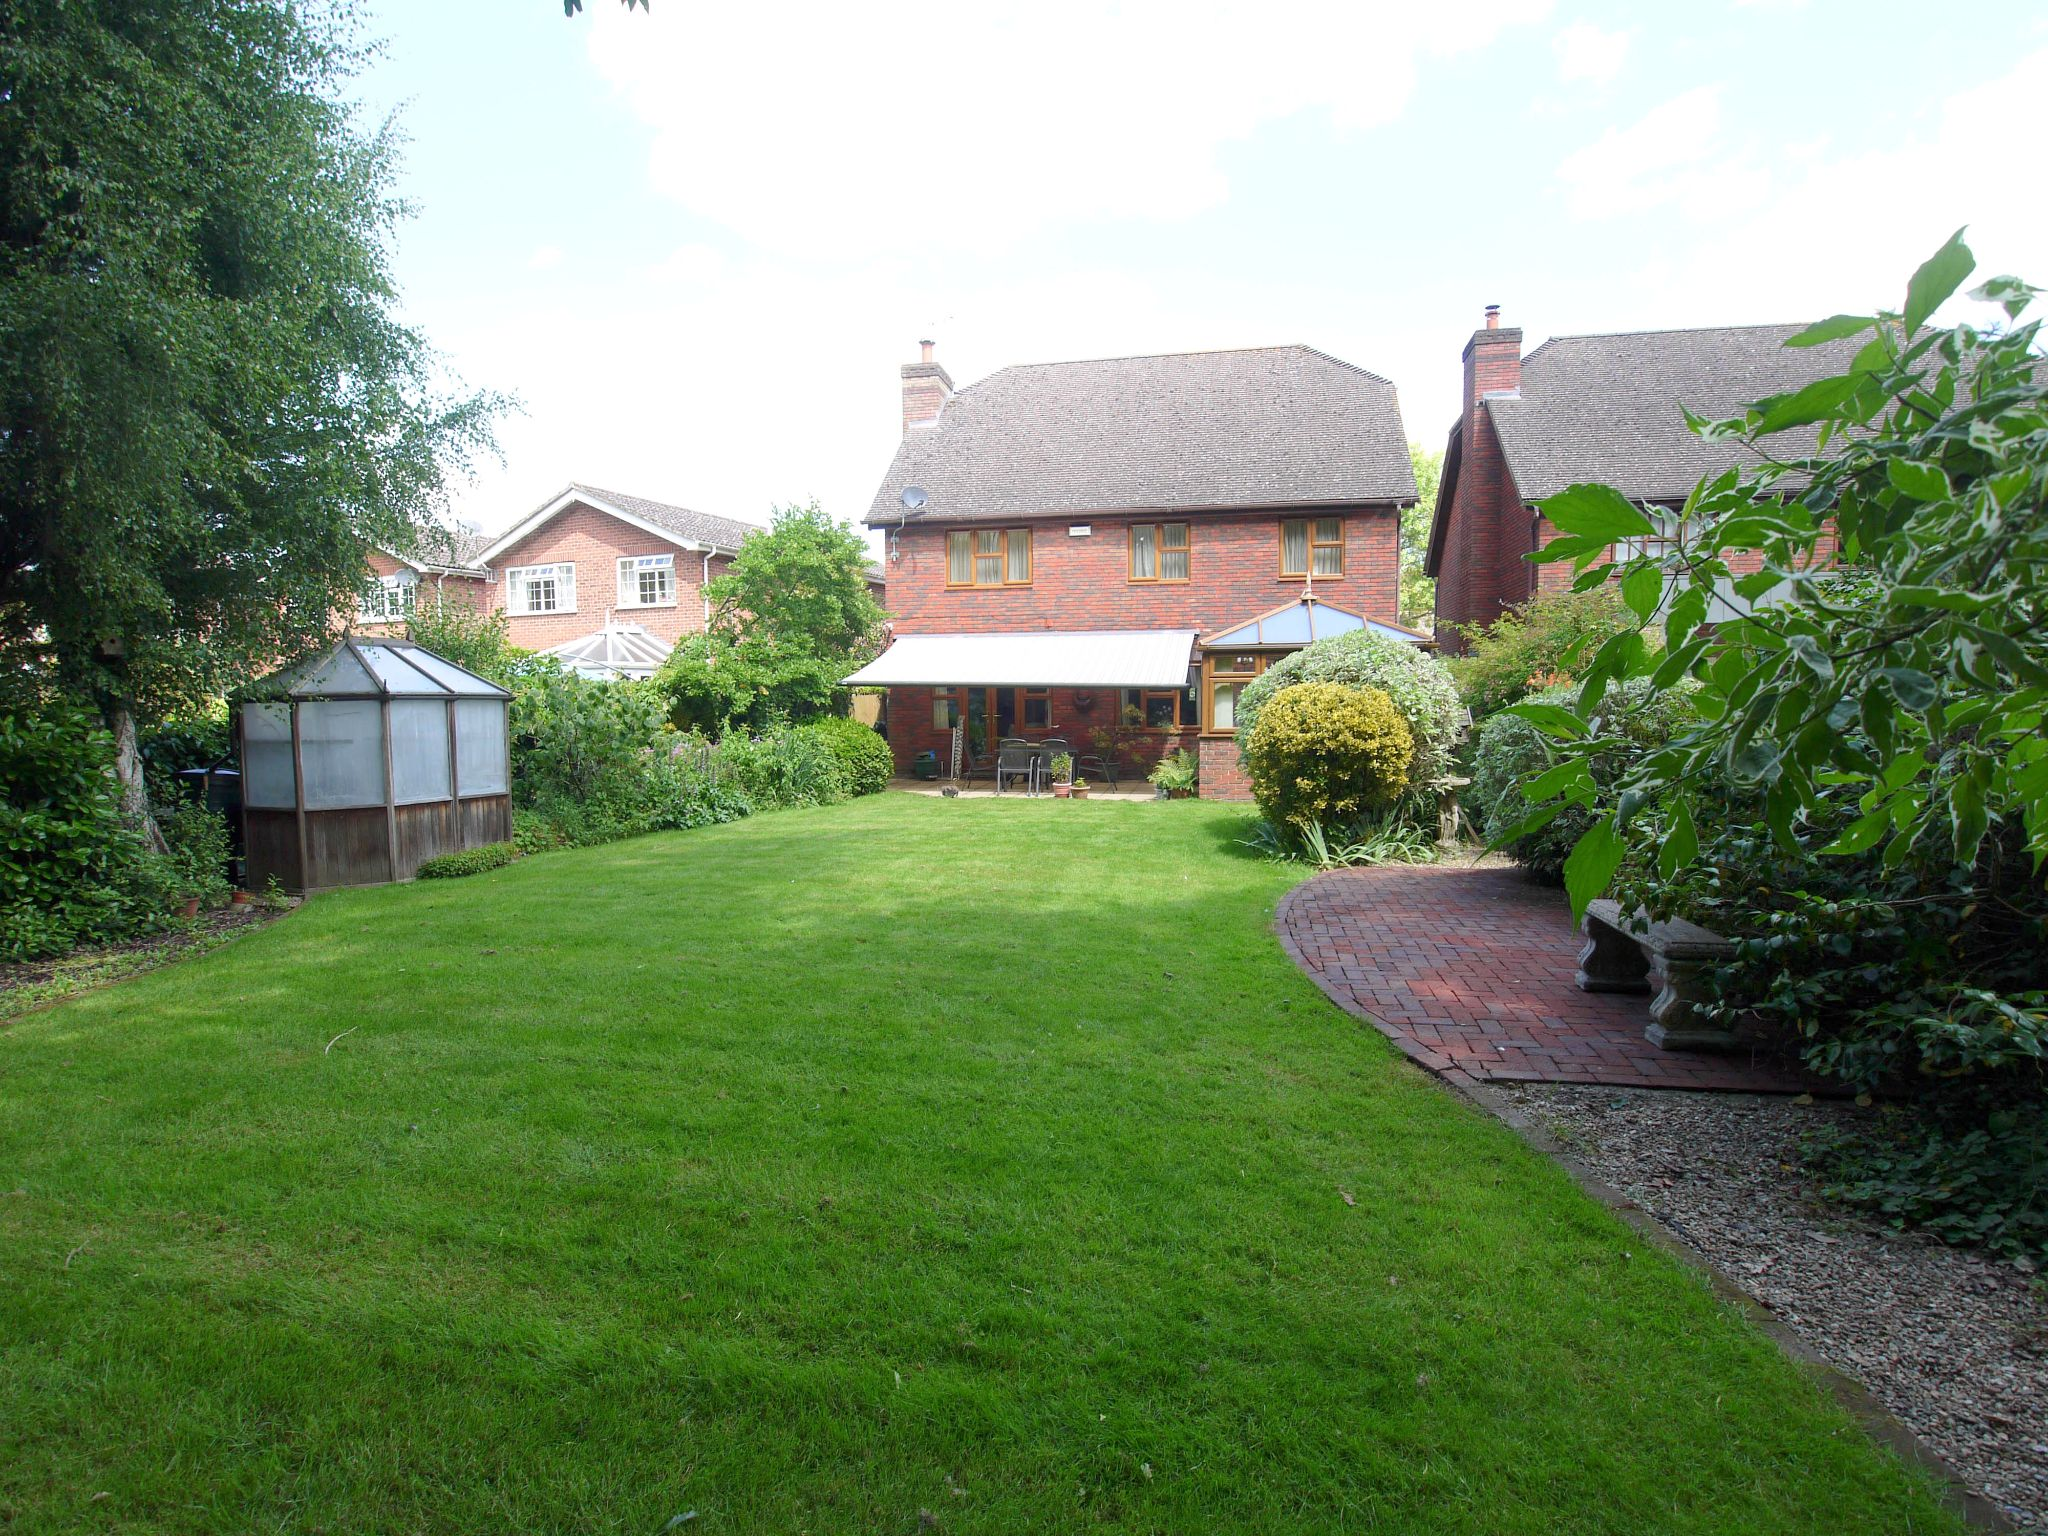 5 bedroom detached house For Sale in Tonbridge - Photograph 10